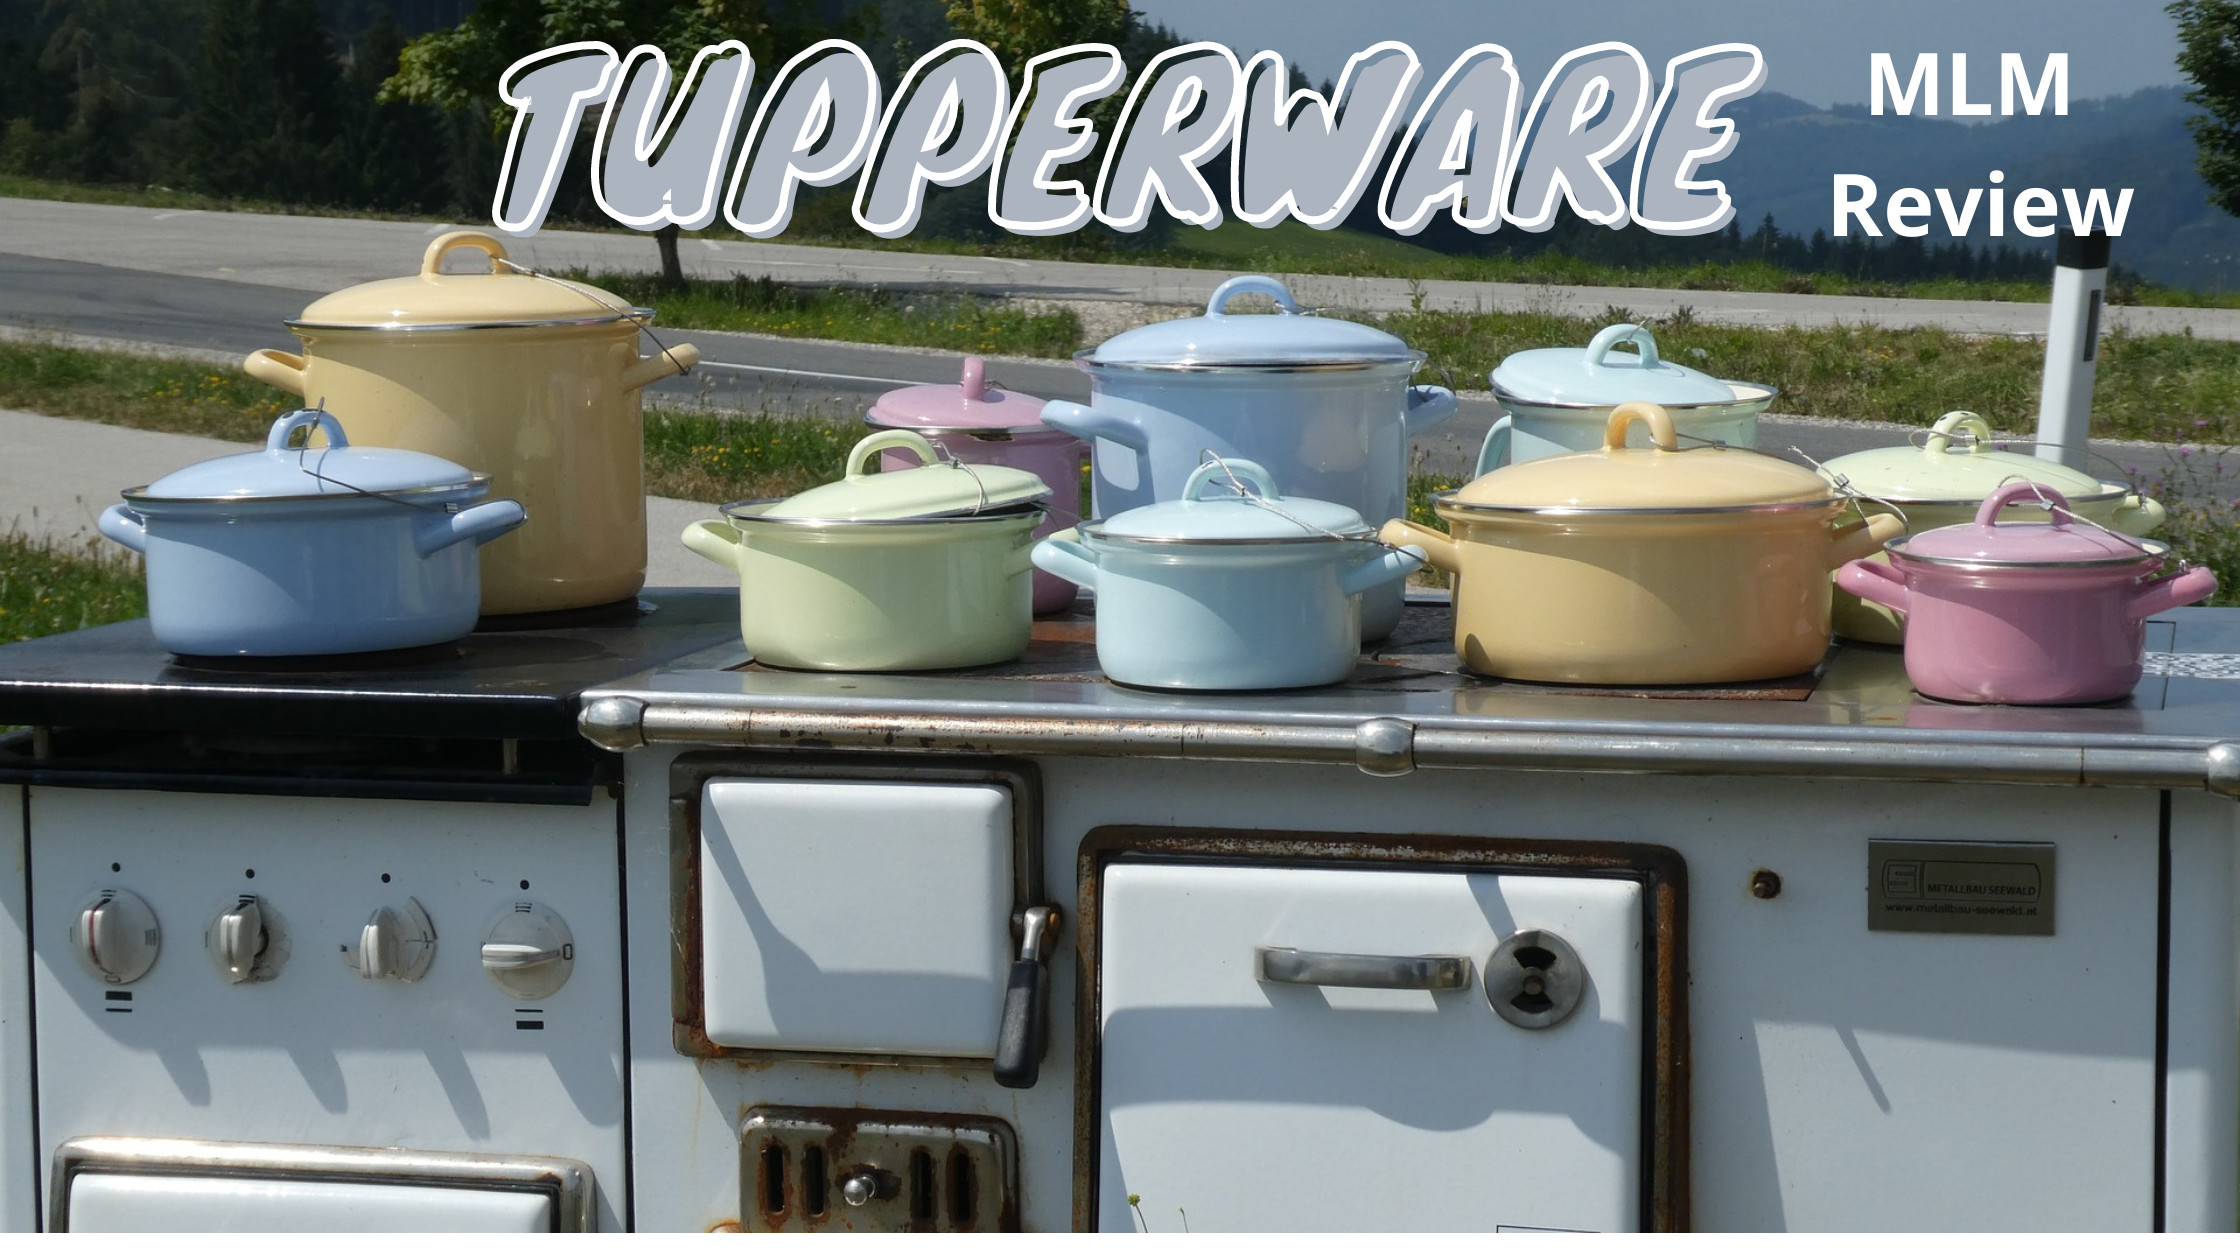 what is Tupperware MLM